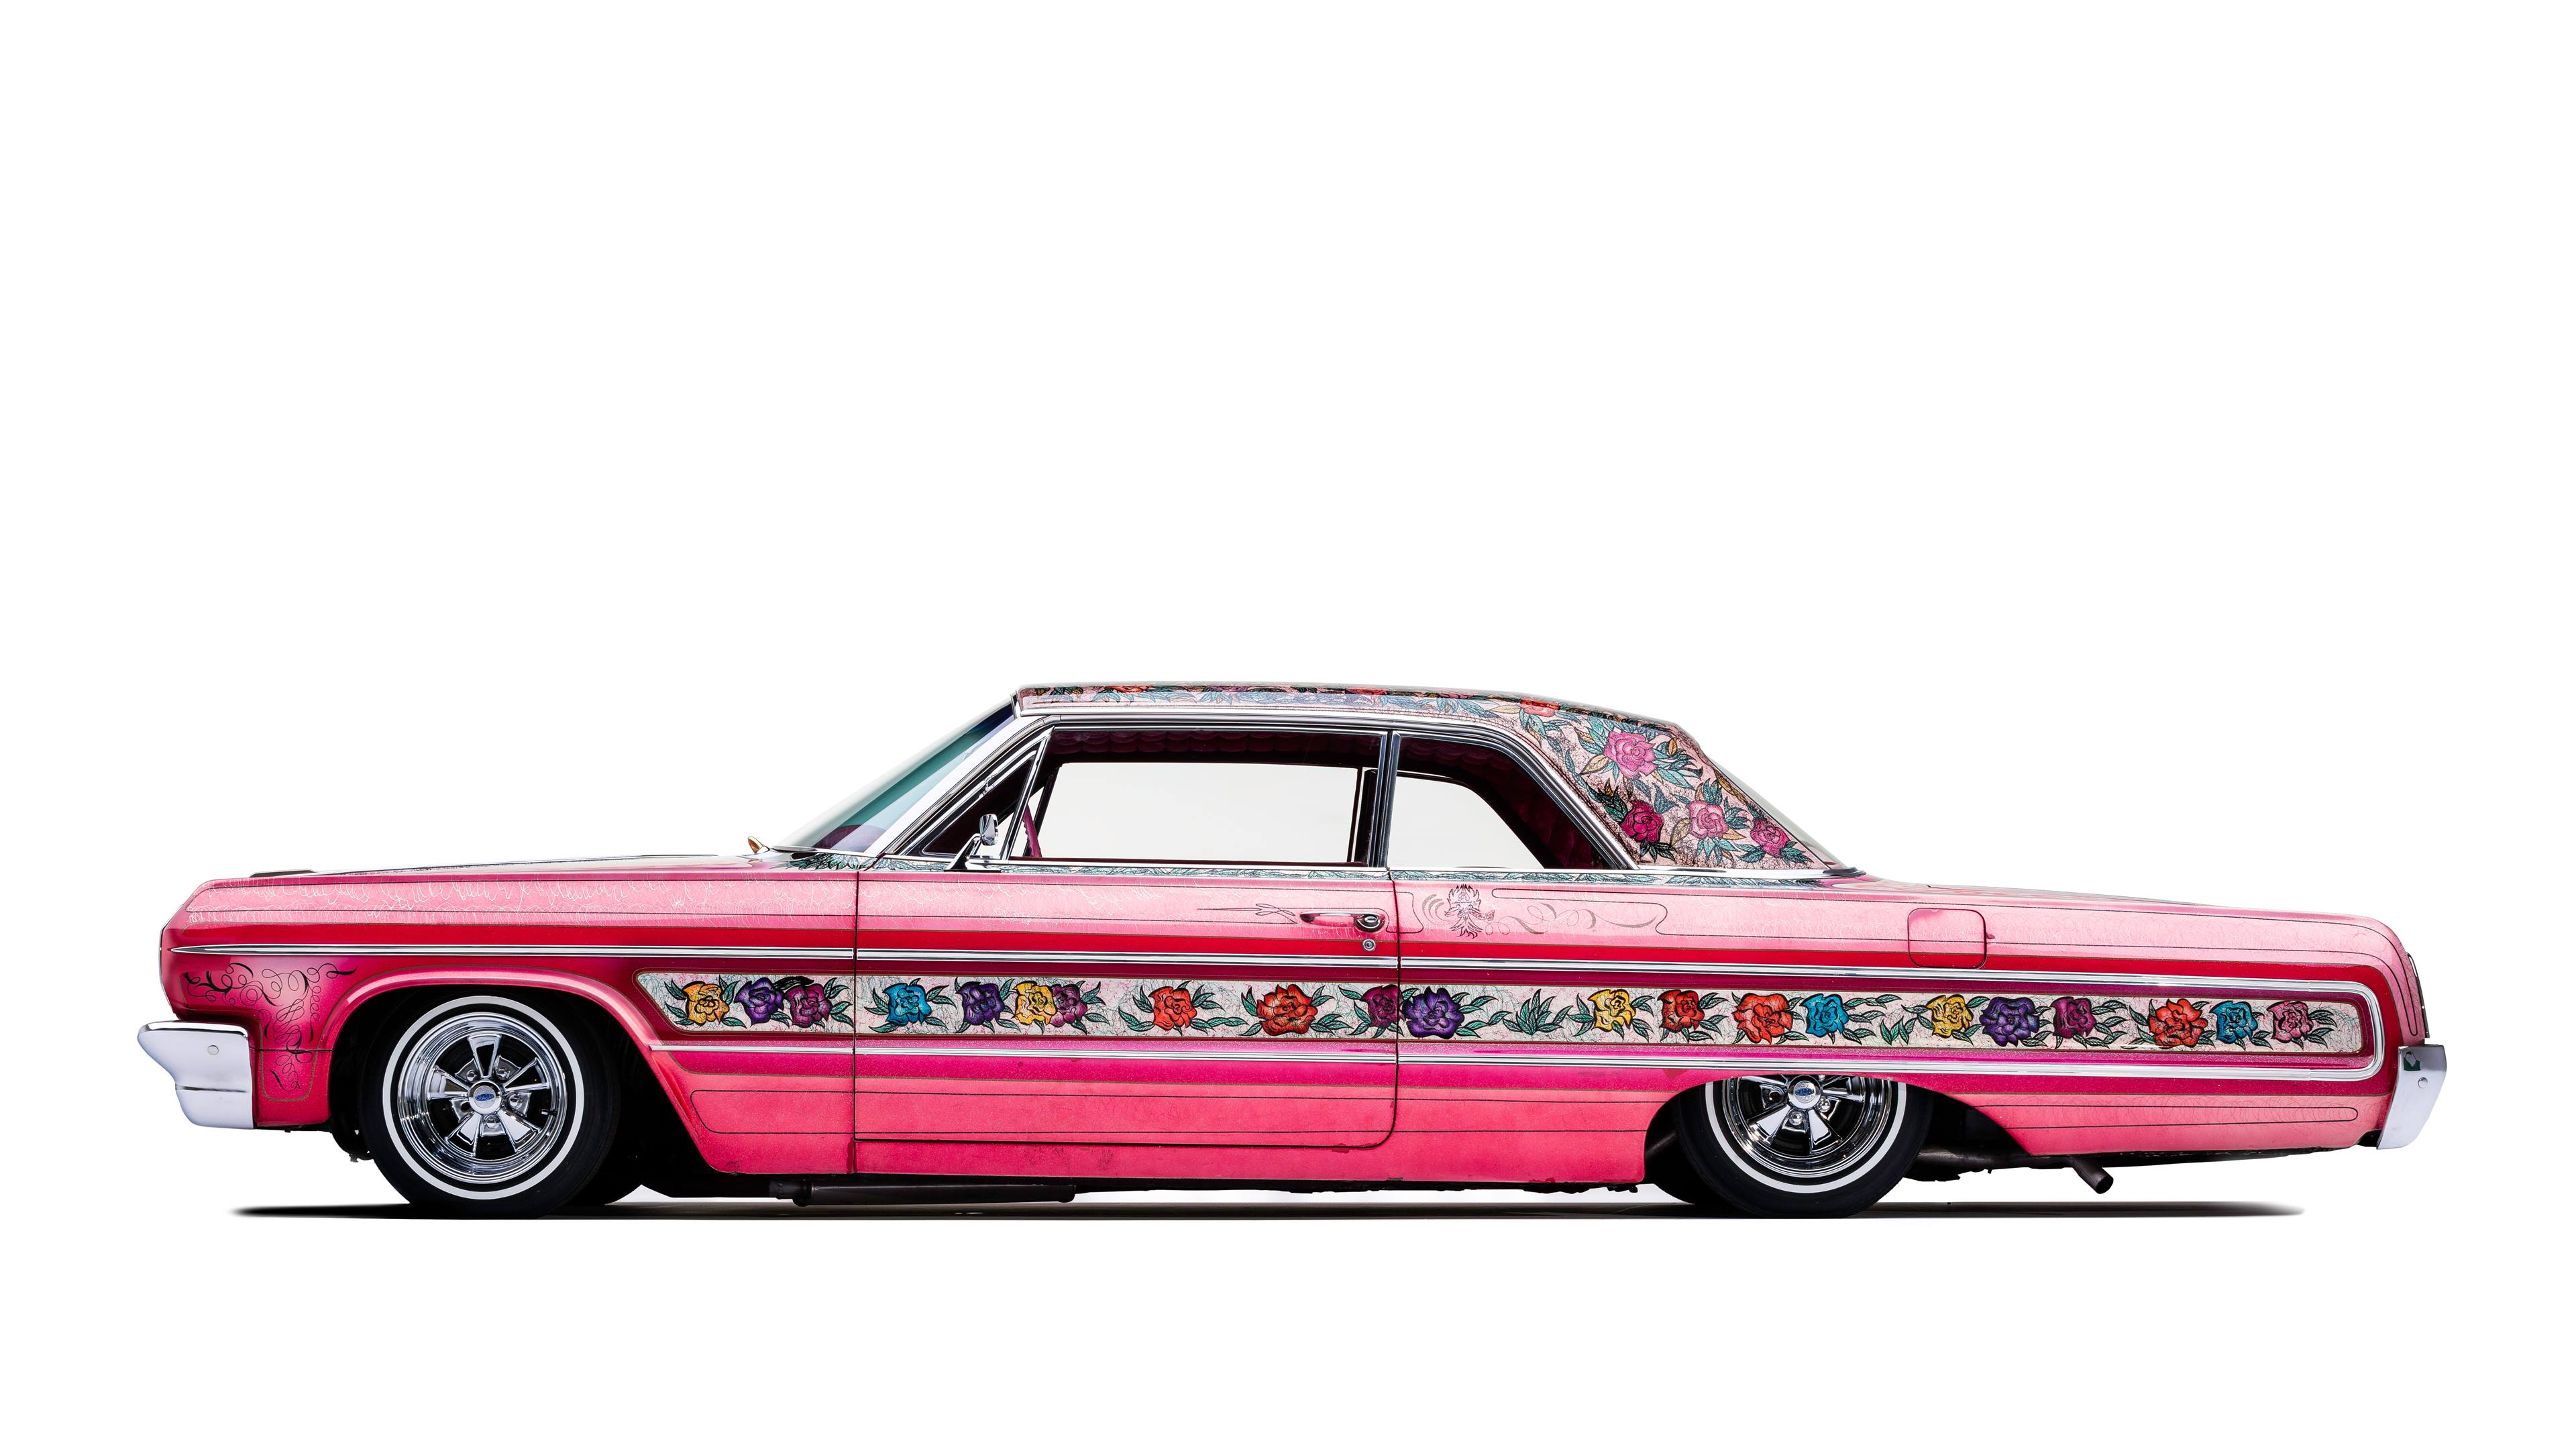 1964 Chevy Impala known as Gypsy Rose profile